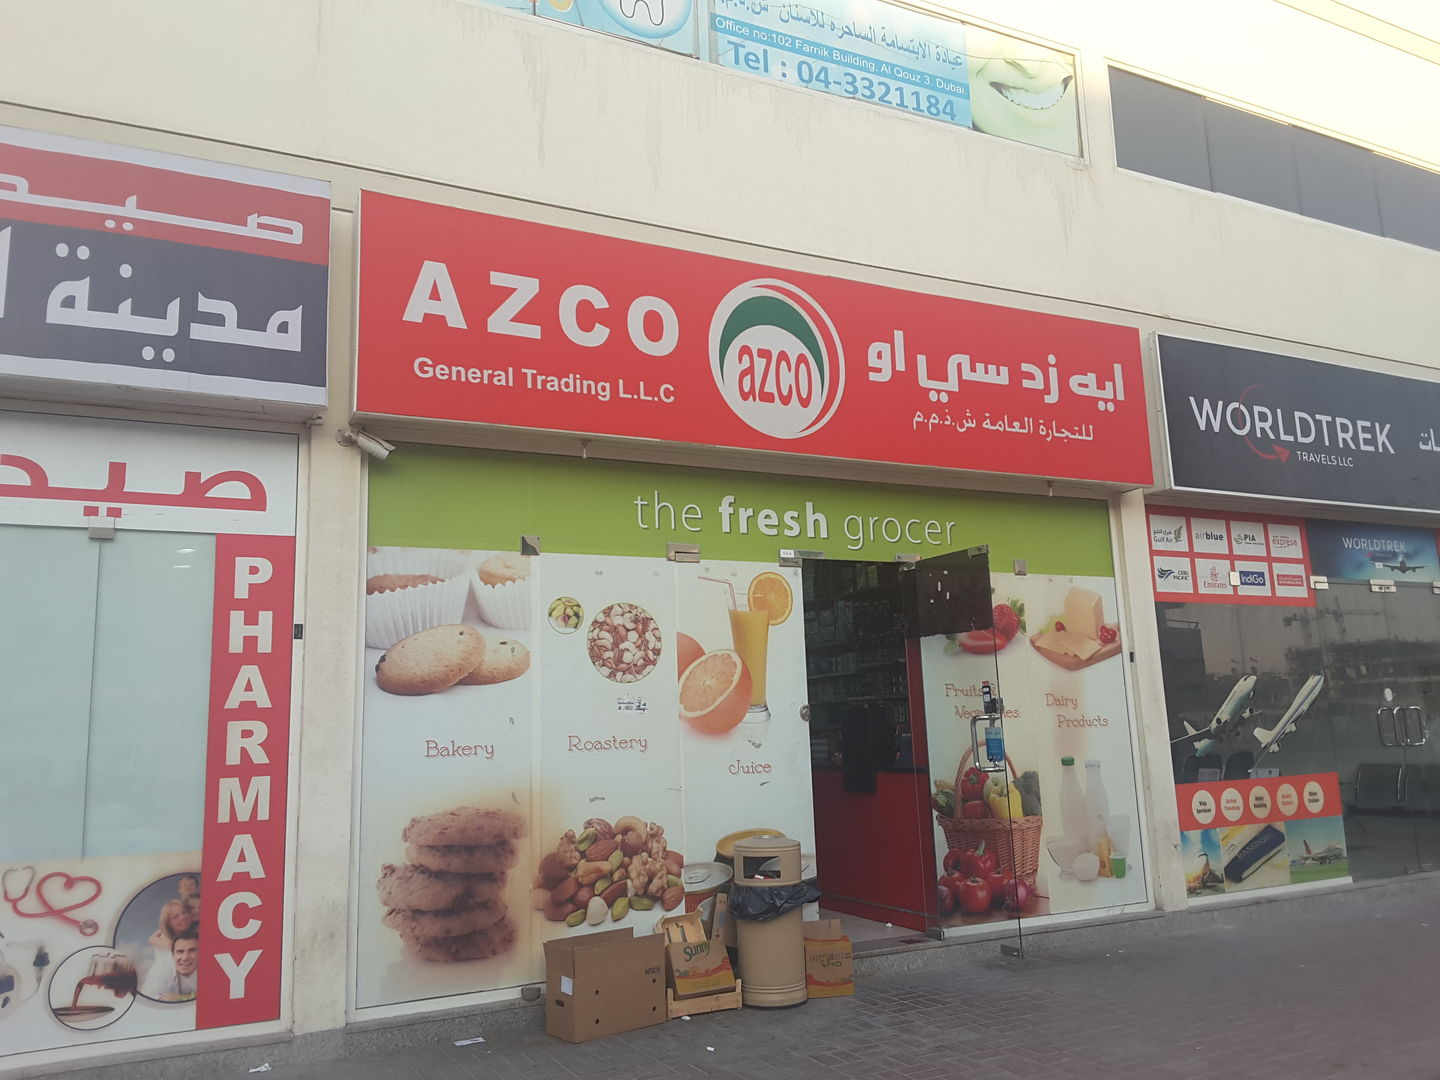 Walif-business-a-z-c-o-general-trading